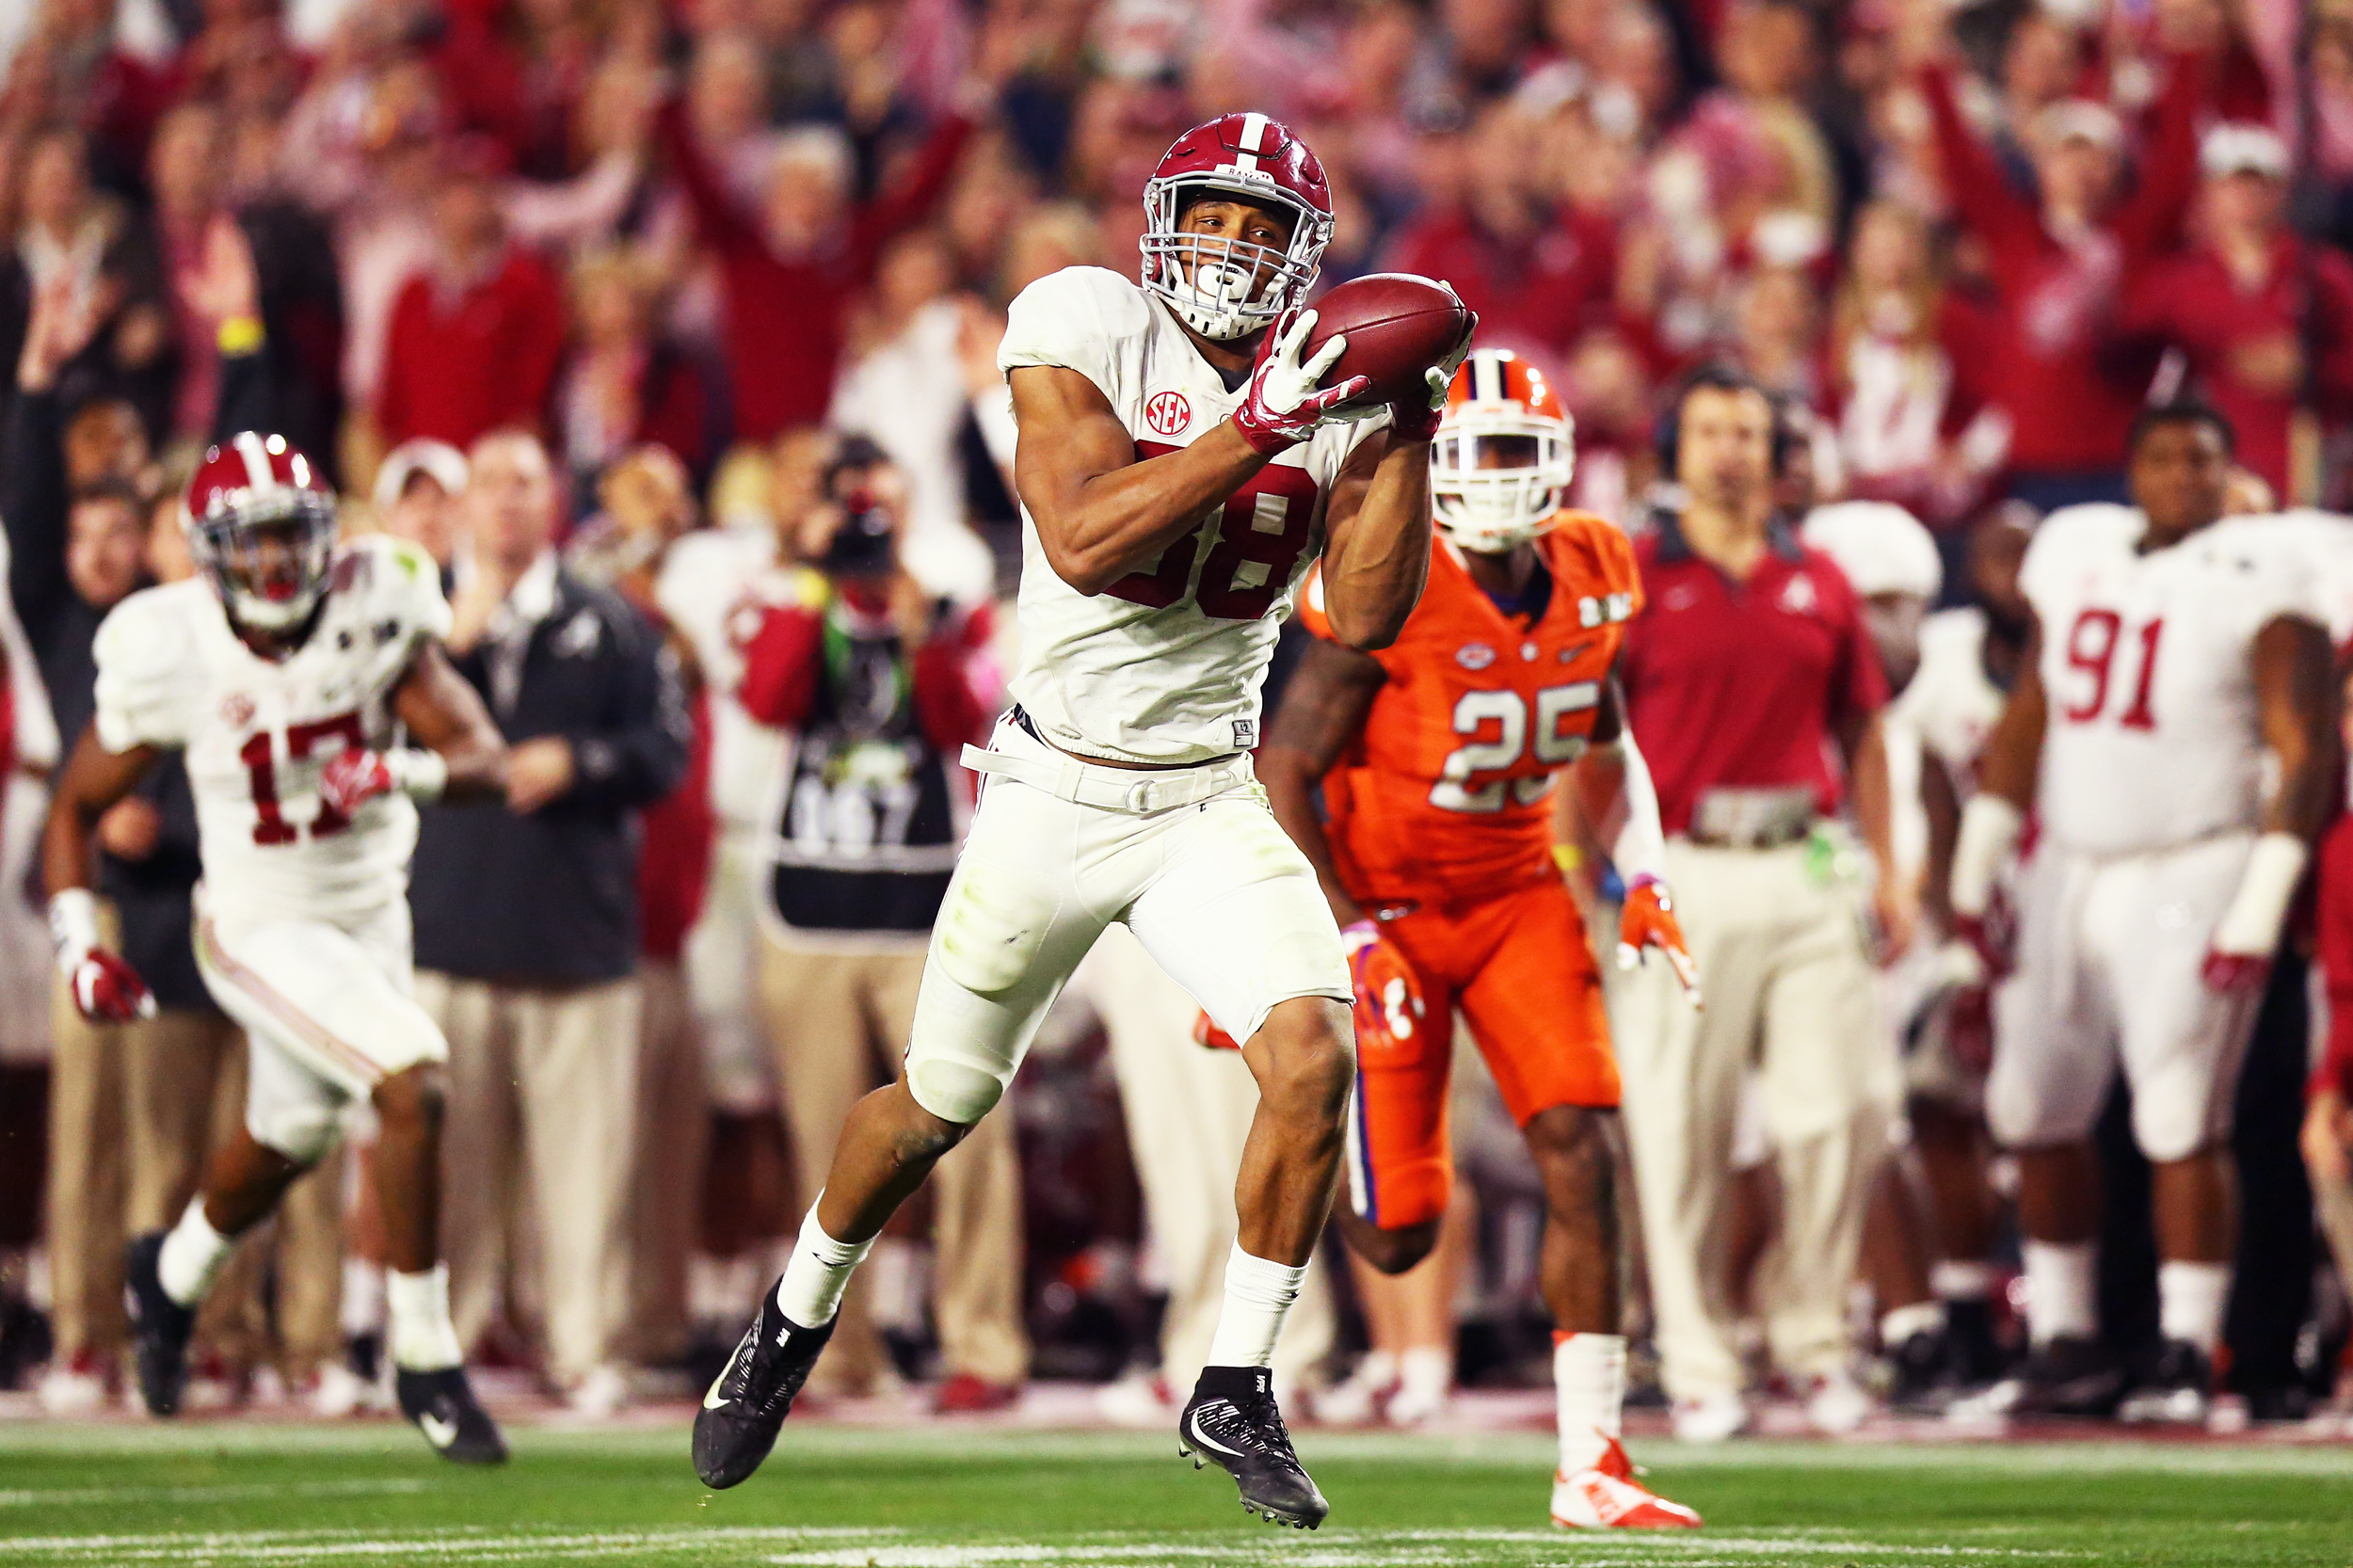 ad26d7c5a09 O.J. Howard #88 of the Alabama Crimson Tide scores a 51-yard touchdown in  the fourth quarter against the Clemson Tigers during the 2016 College  Football ...